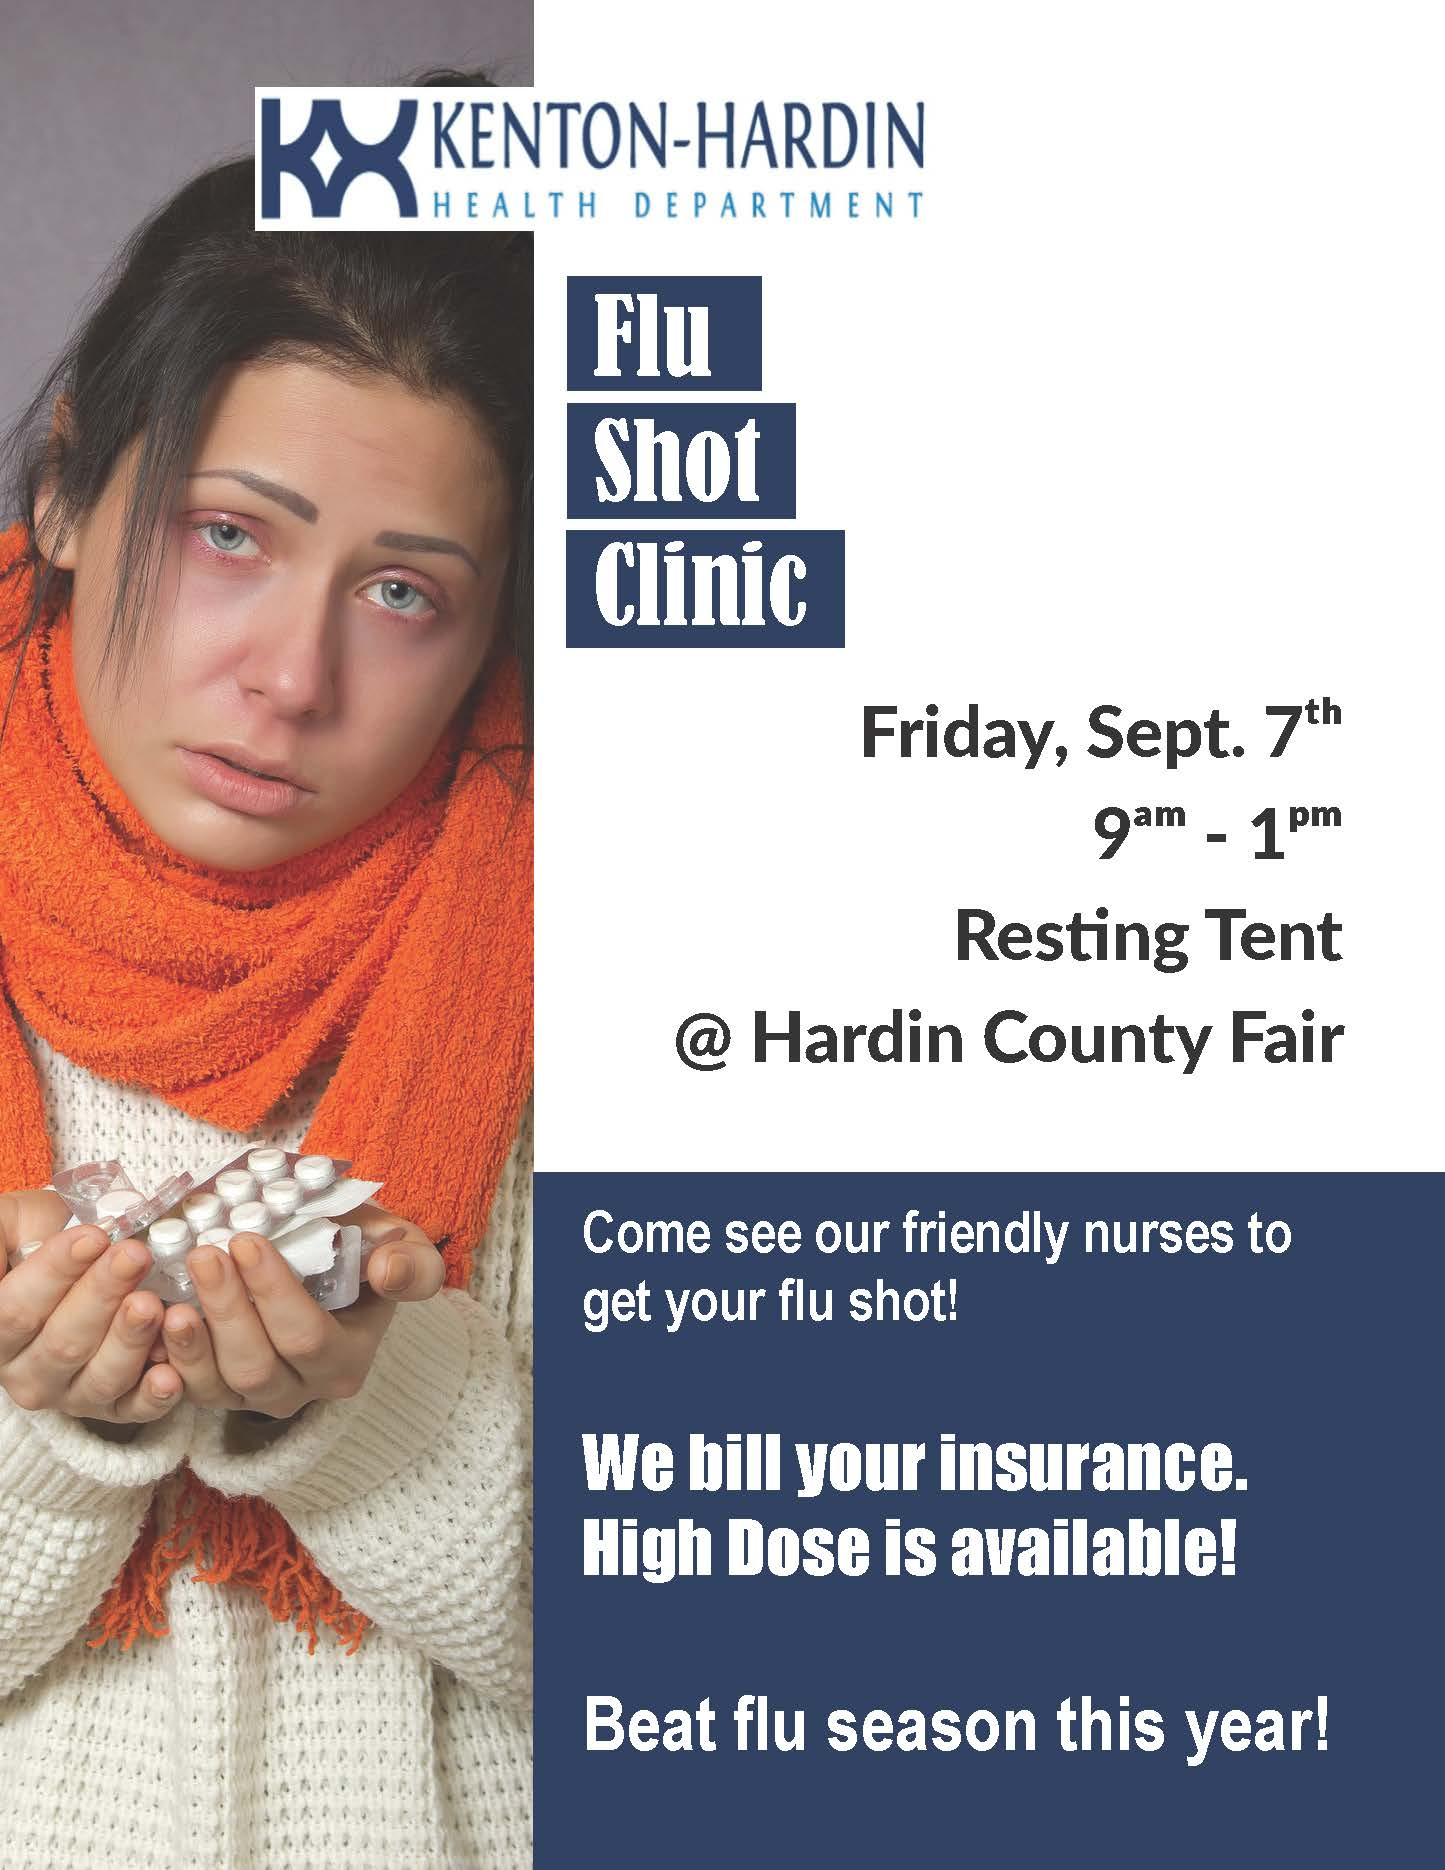 Fair Flu Shot Clinic